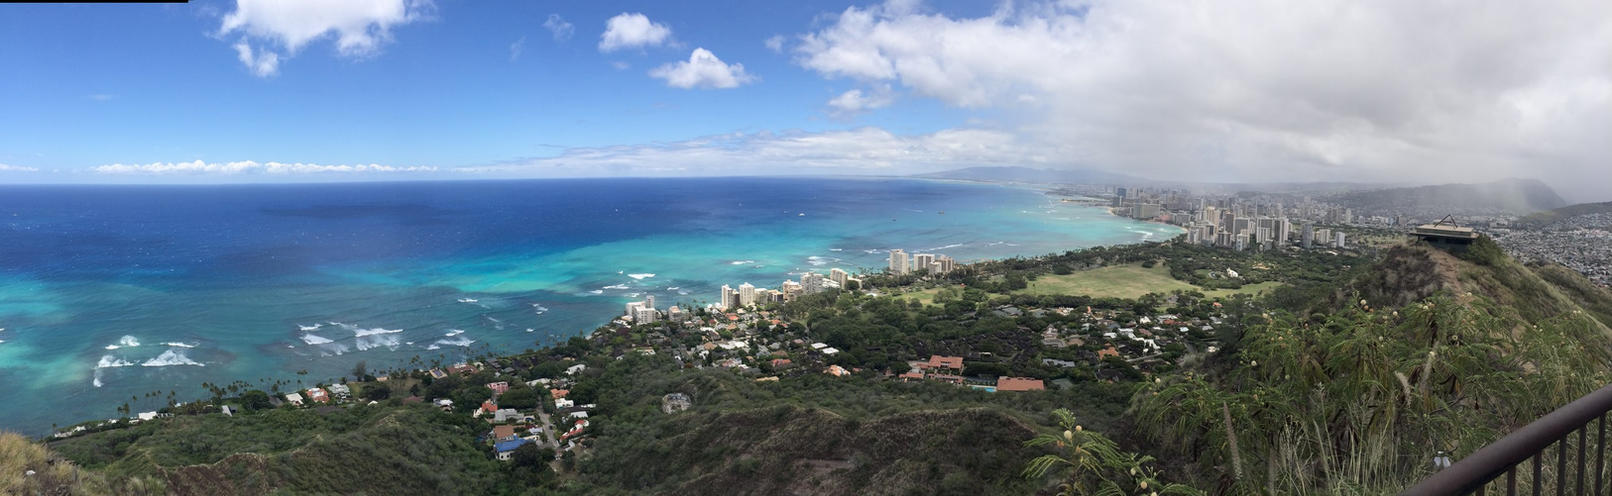 Honolulu, United States by makssgame